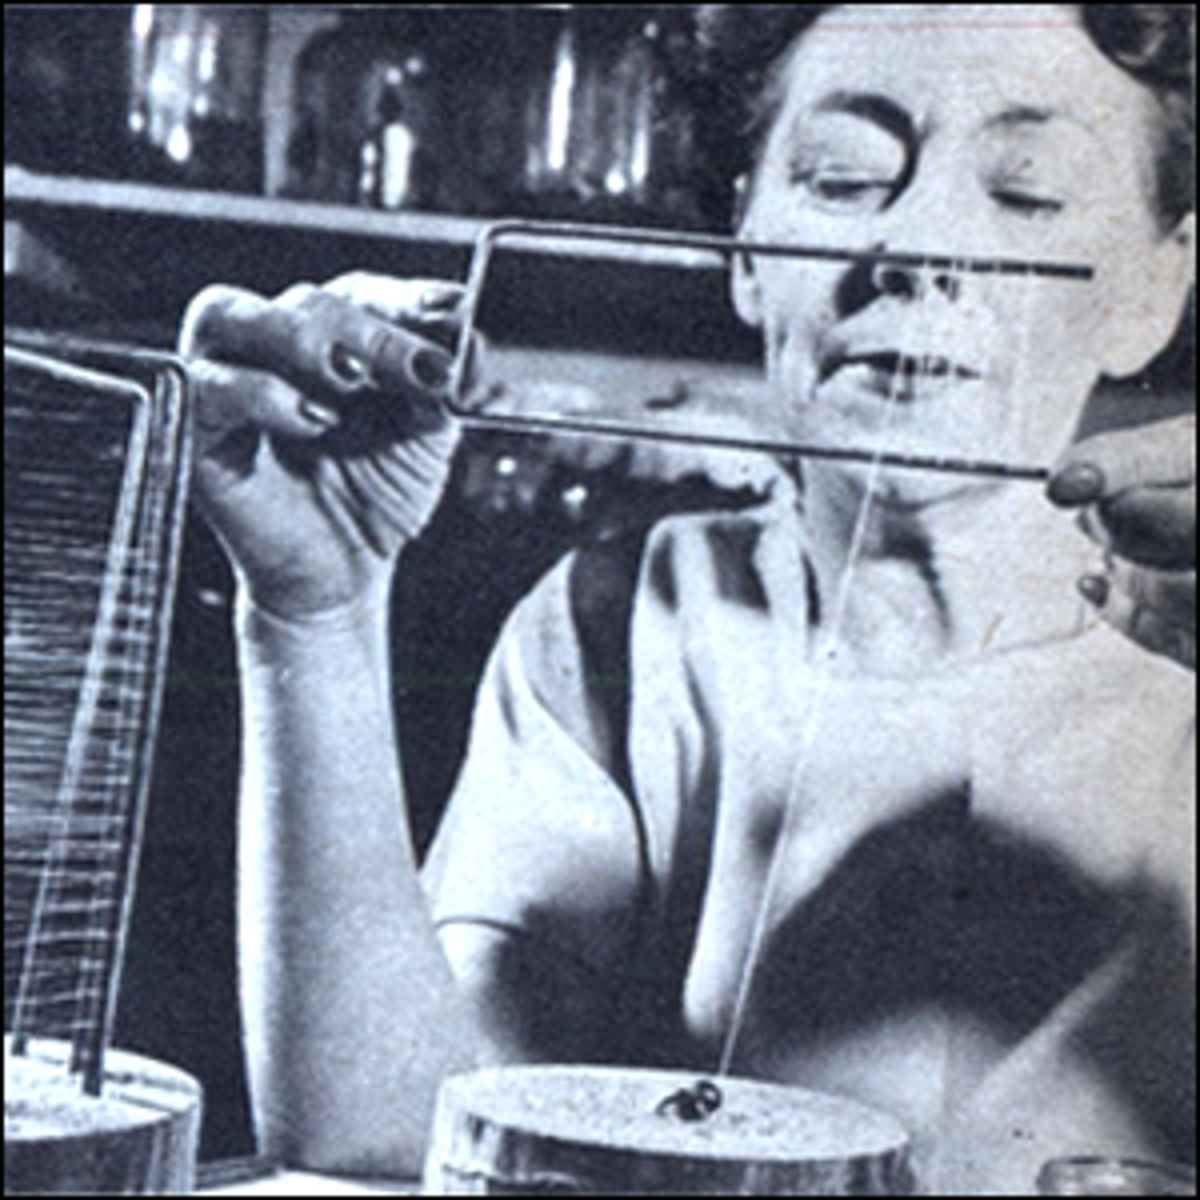 Nan Songer, an amateur entomologist who made a name for herself producing large quantities of spider silk during World War II.